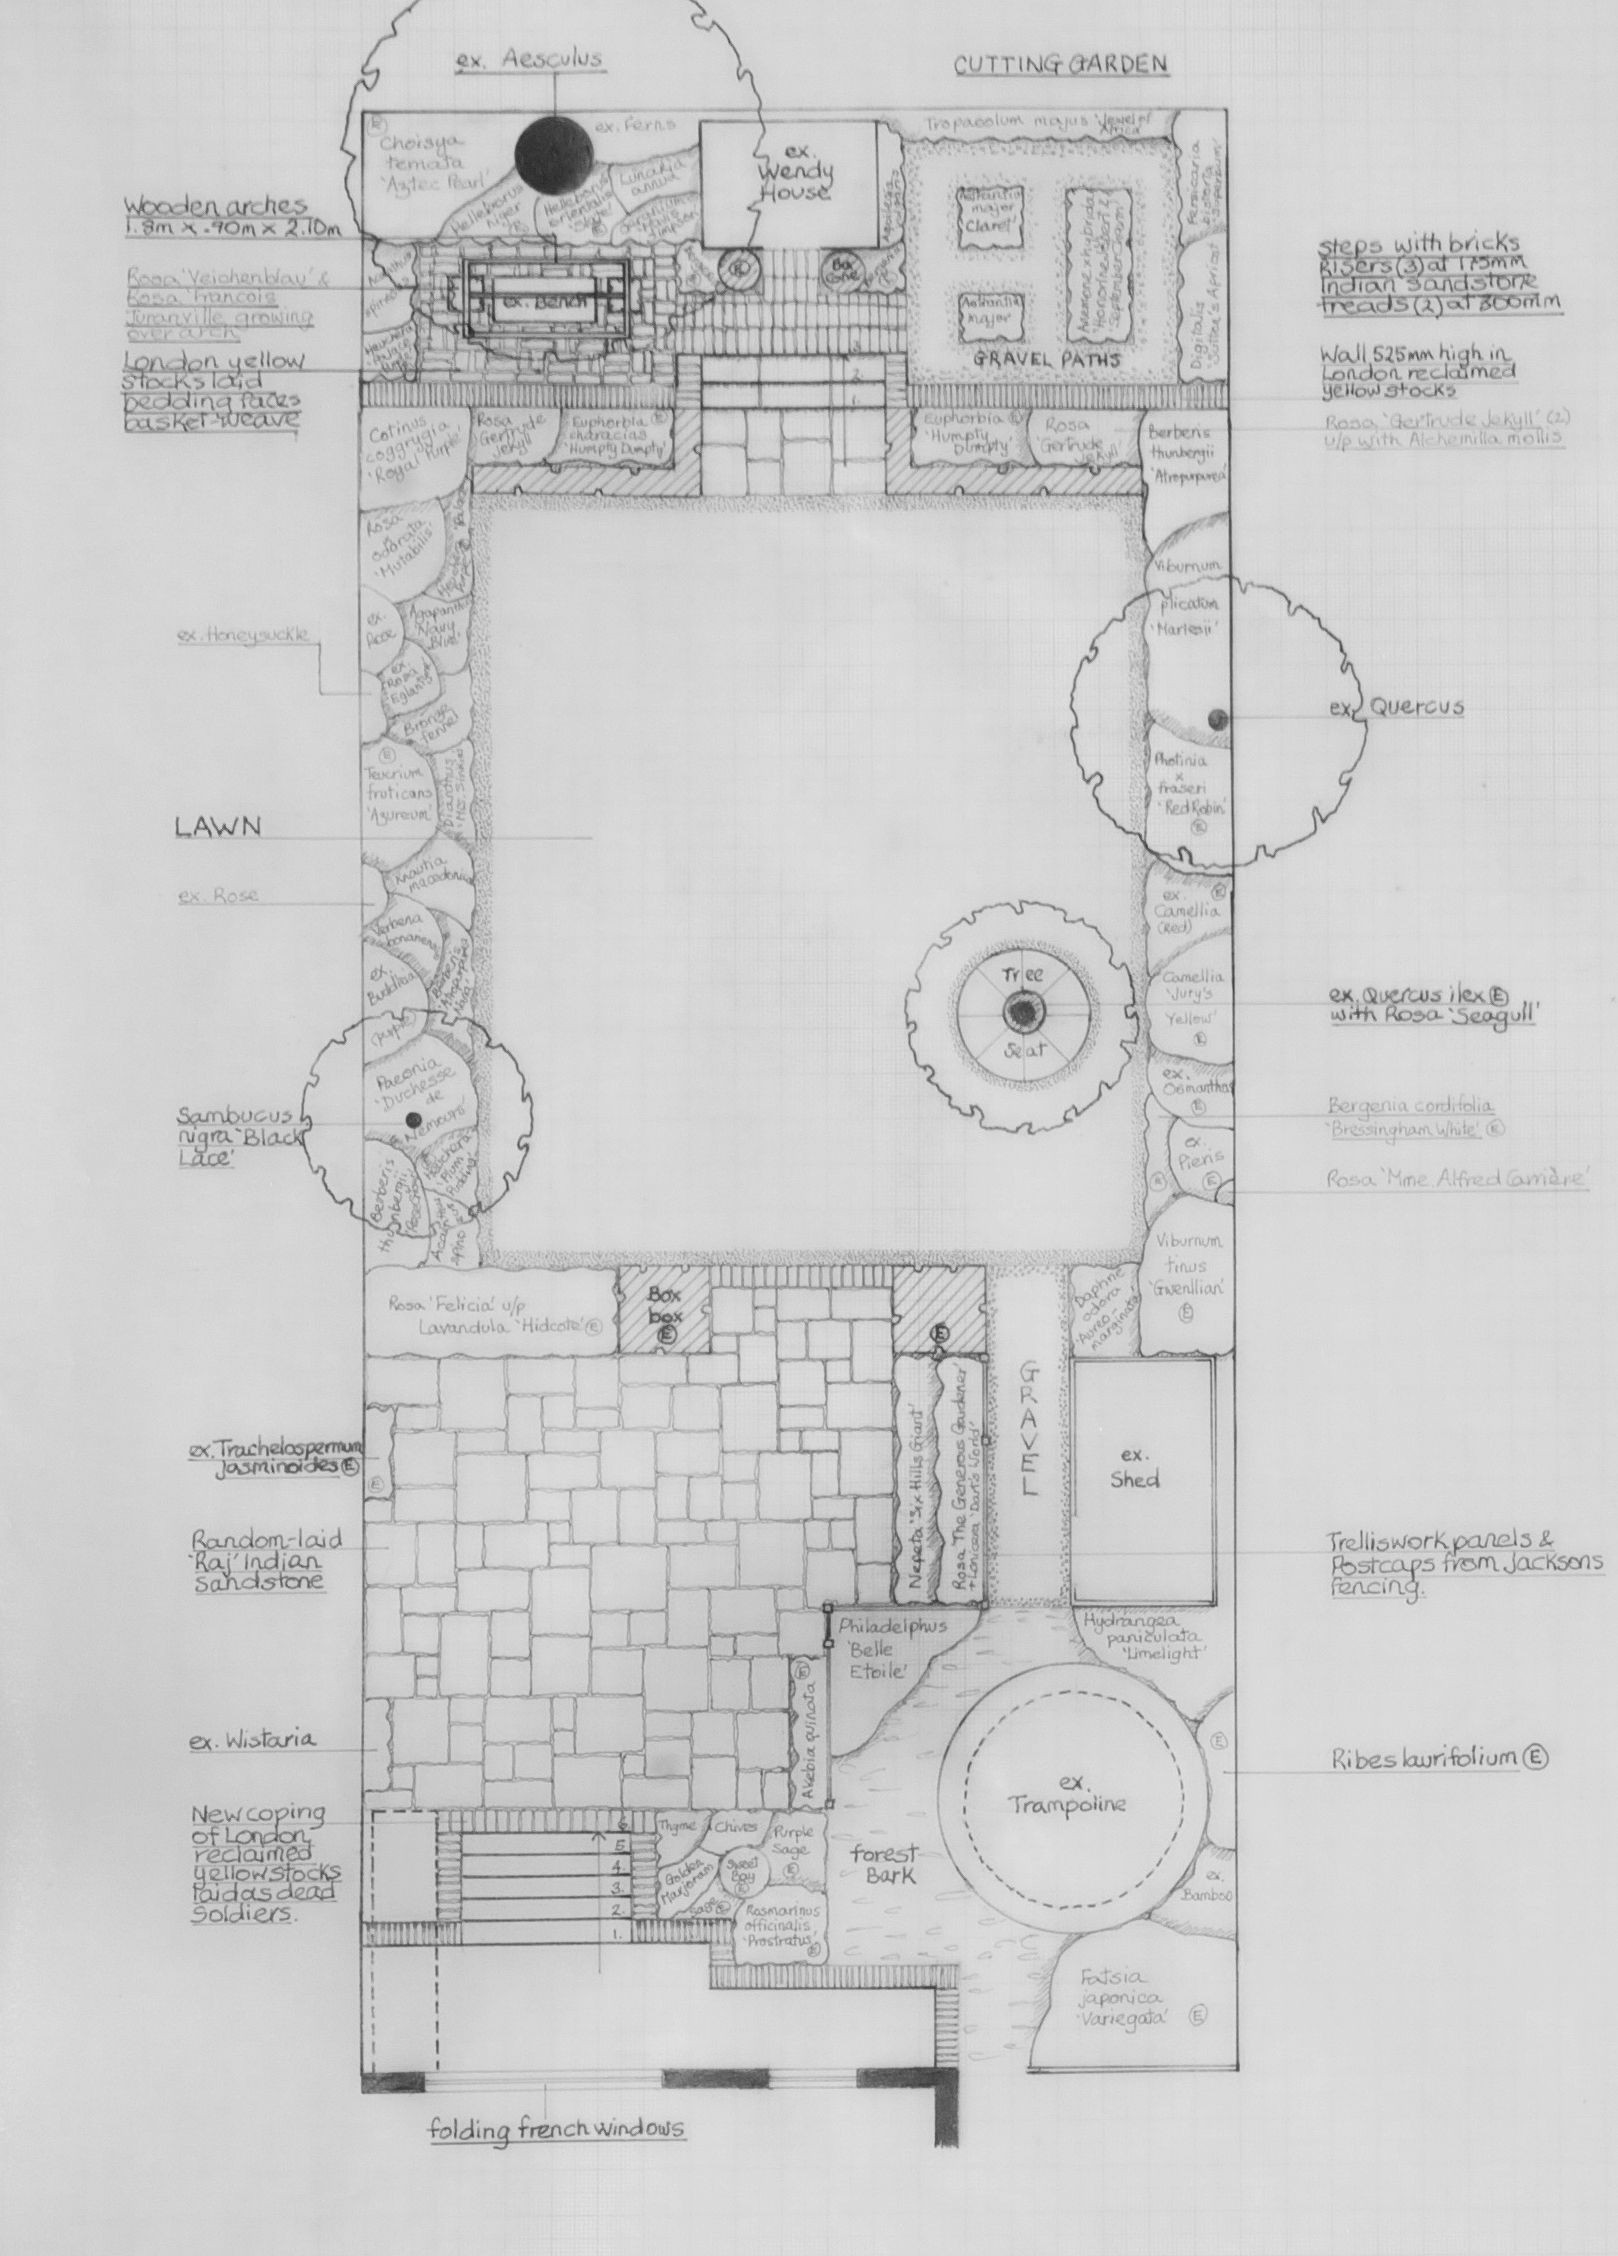 Garden Design North Facing garden design for a north-facing victorian semi-detached house in